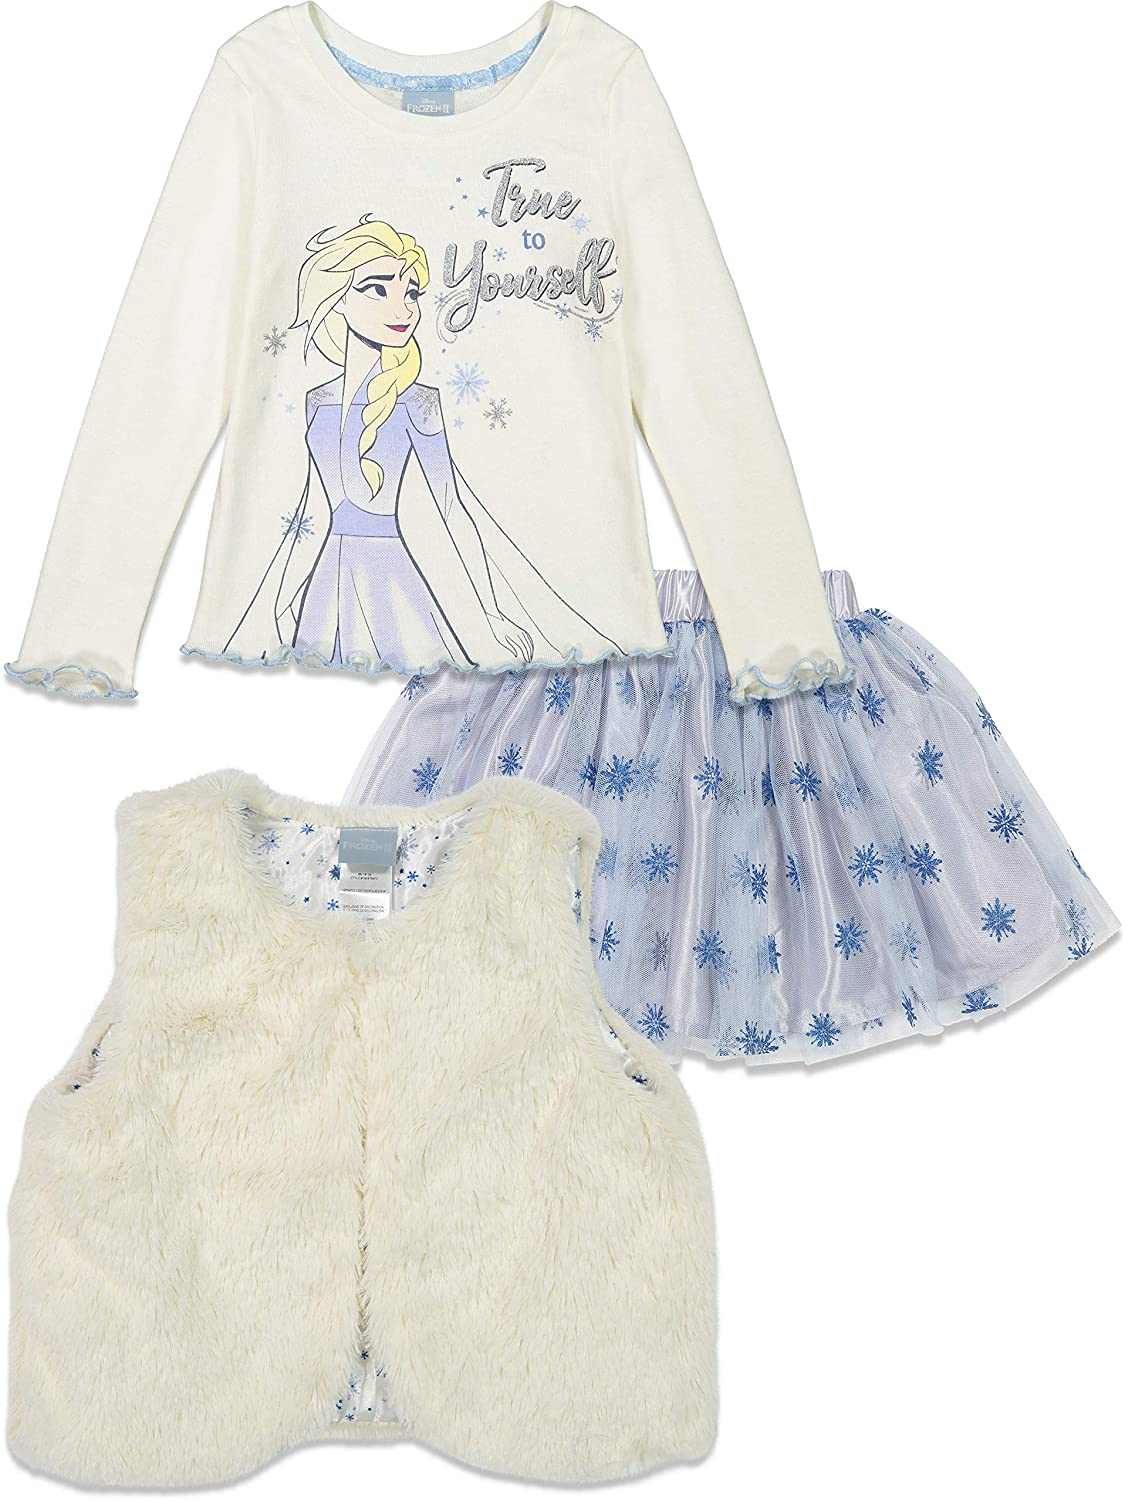 Disney Girls T-Shirt and Skirt Set